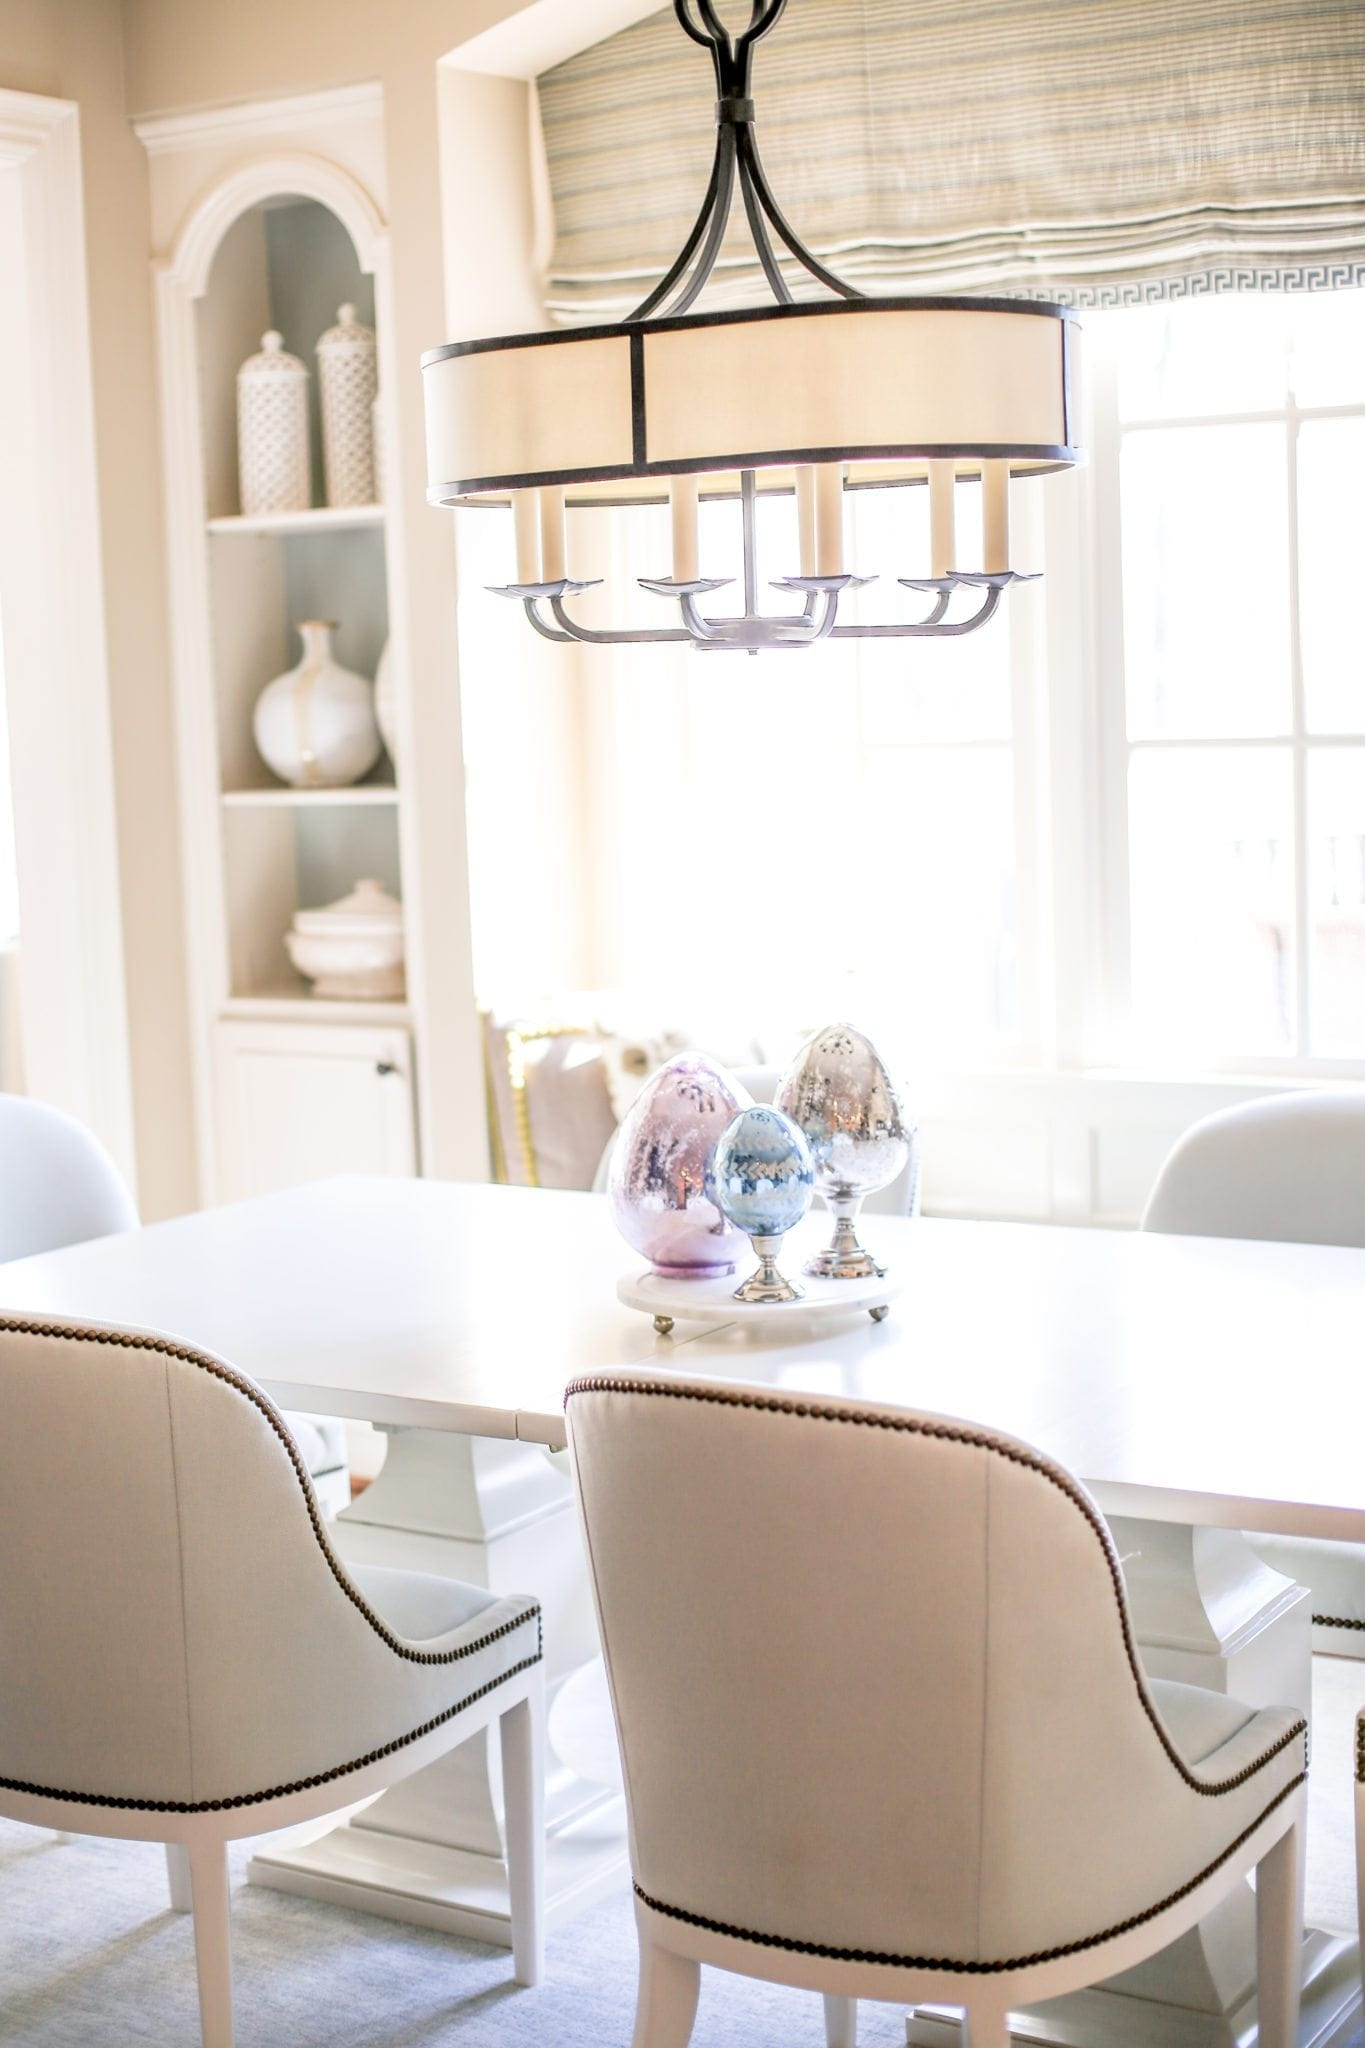 Spring kitchen table centerpiece idea. How to decorate for spring.